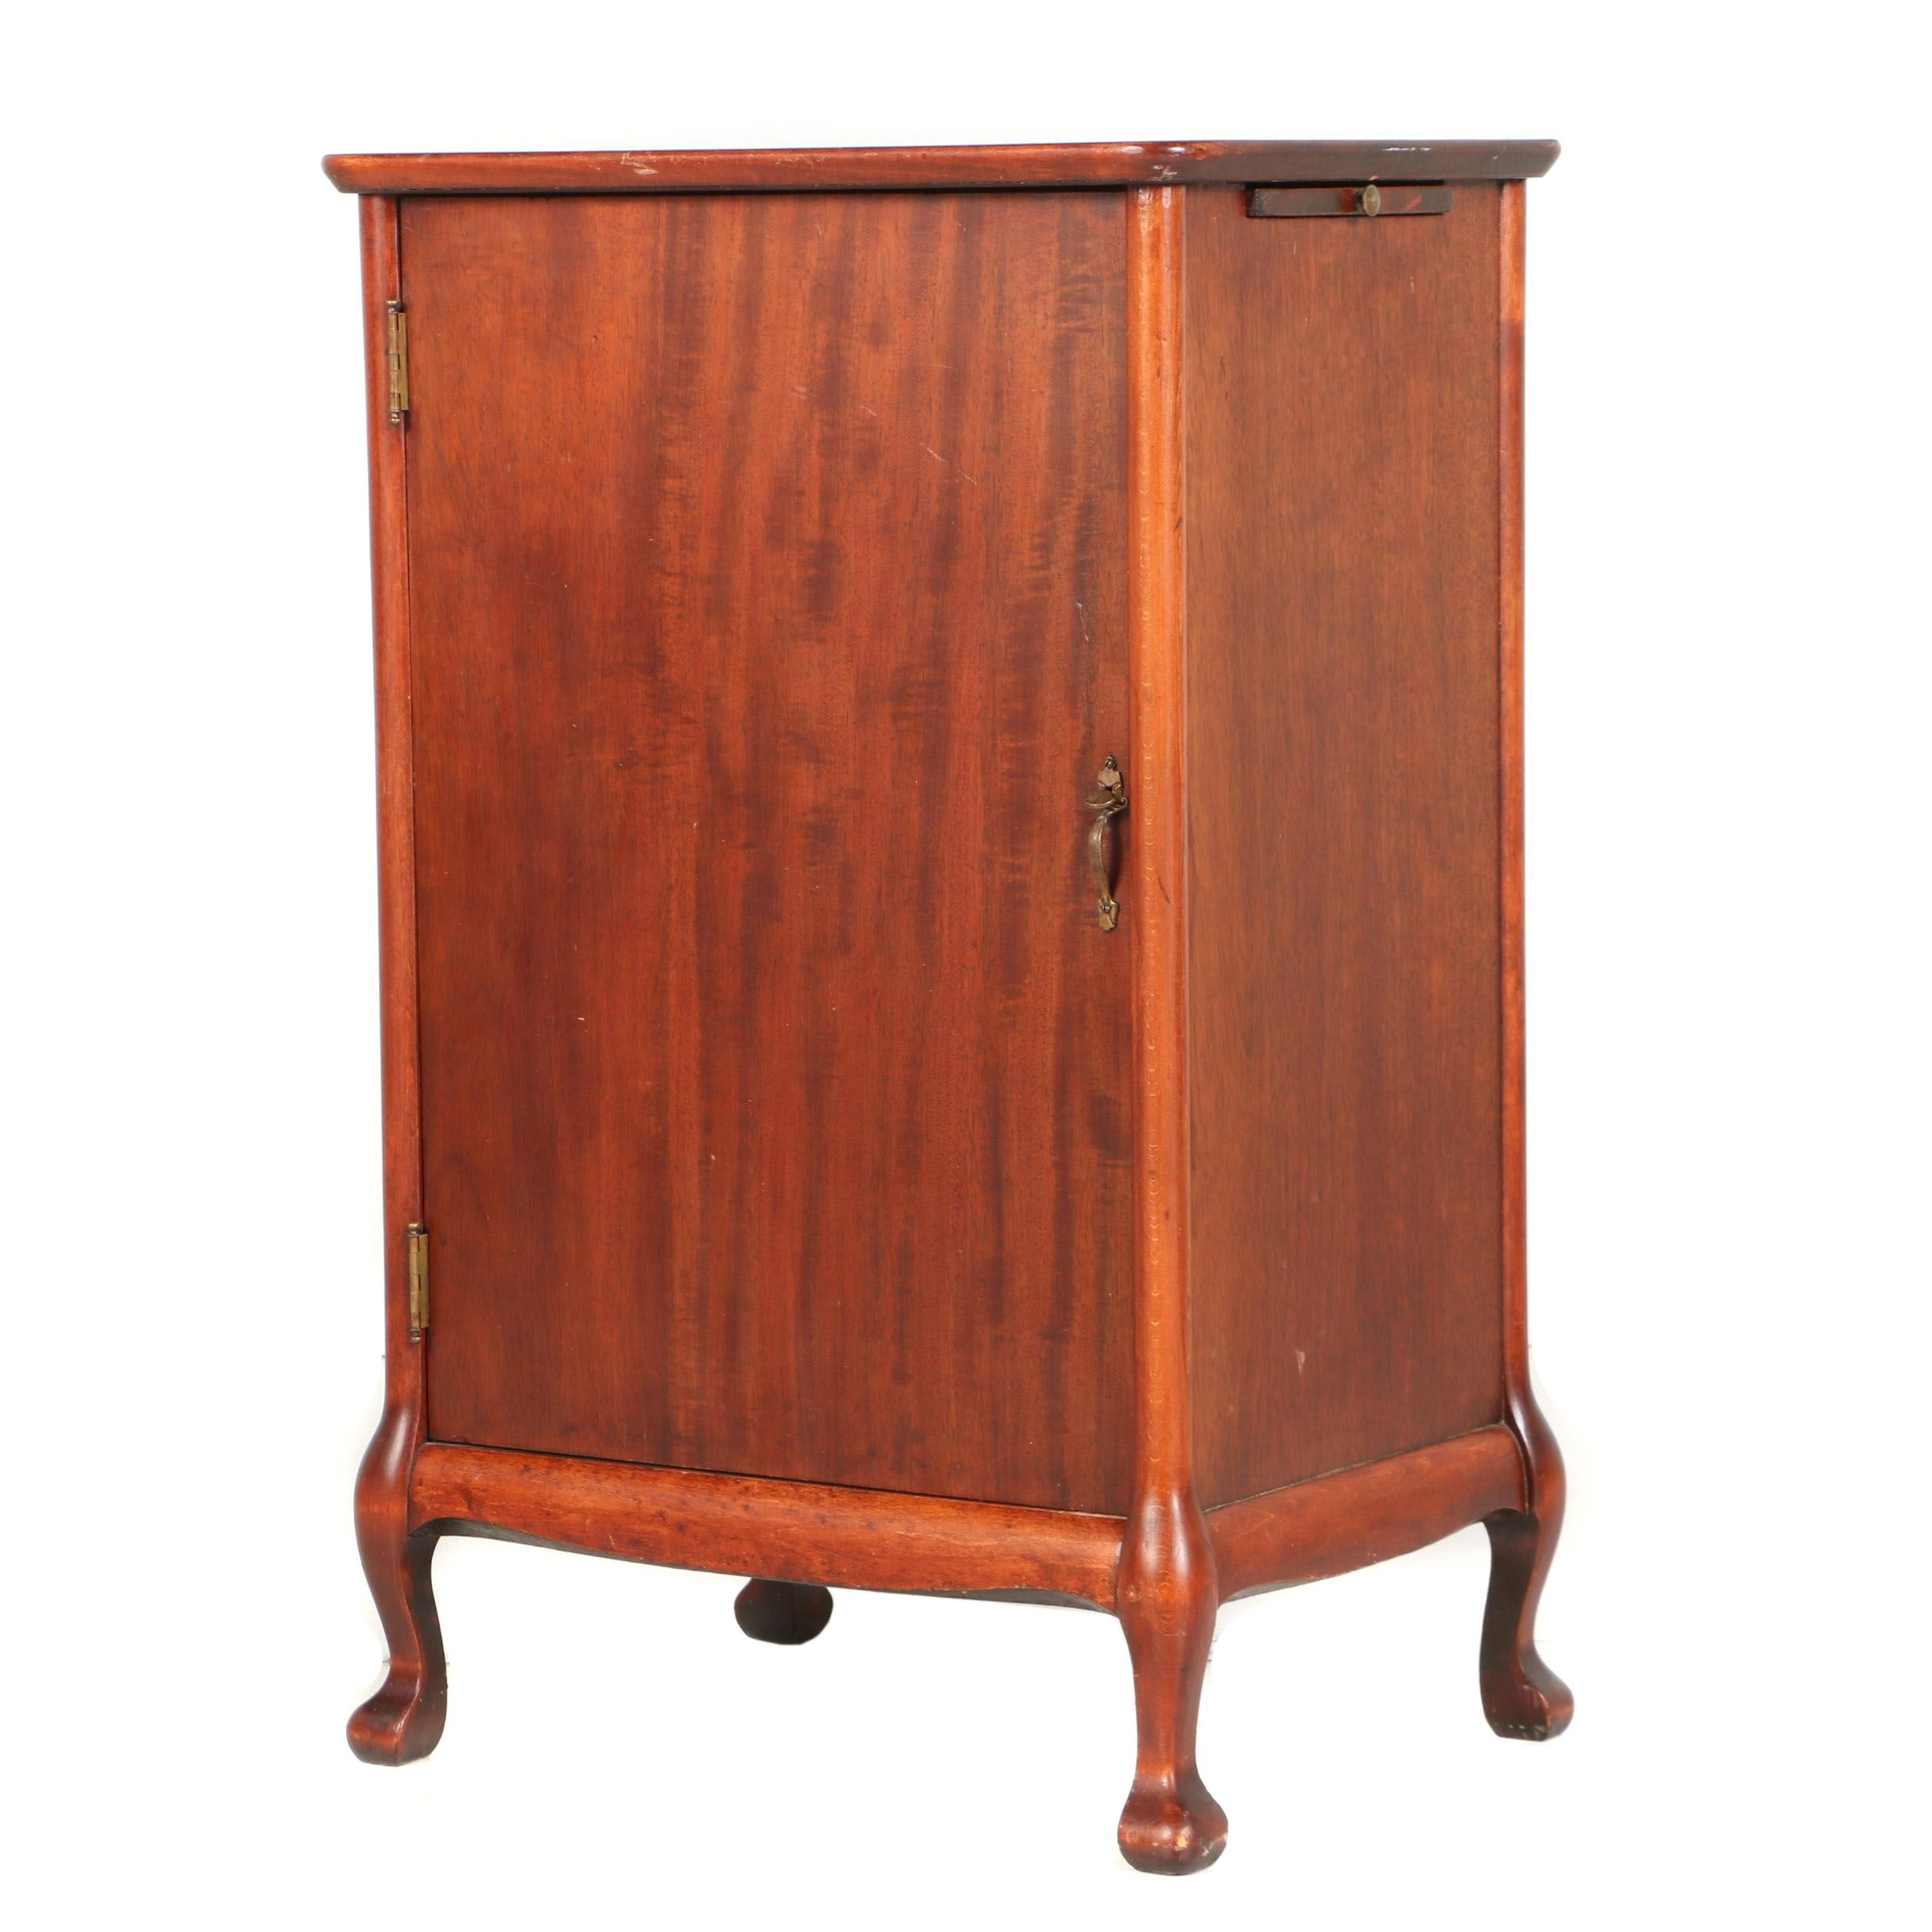 Mahogany Record Cabinet, Early 20th Century